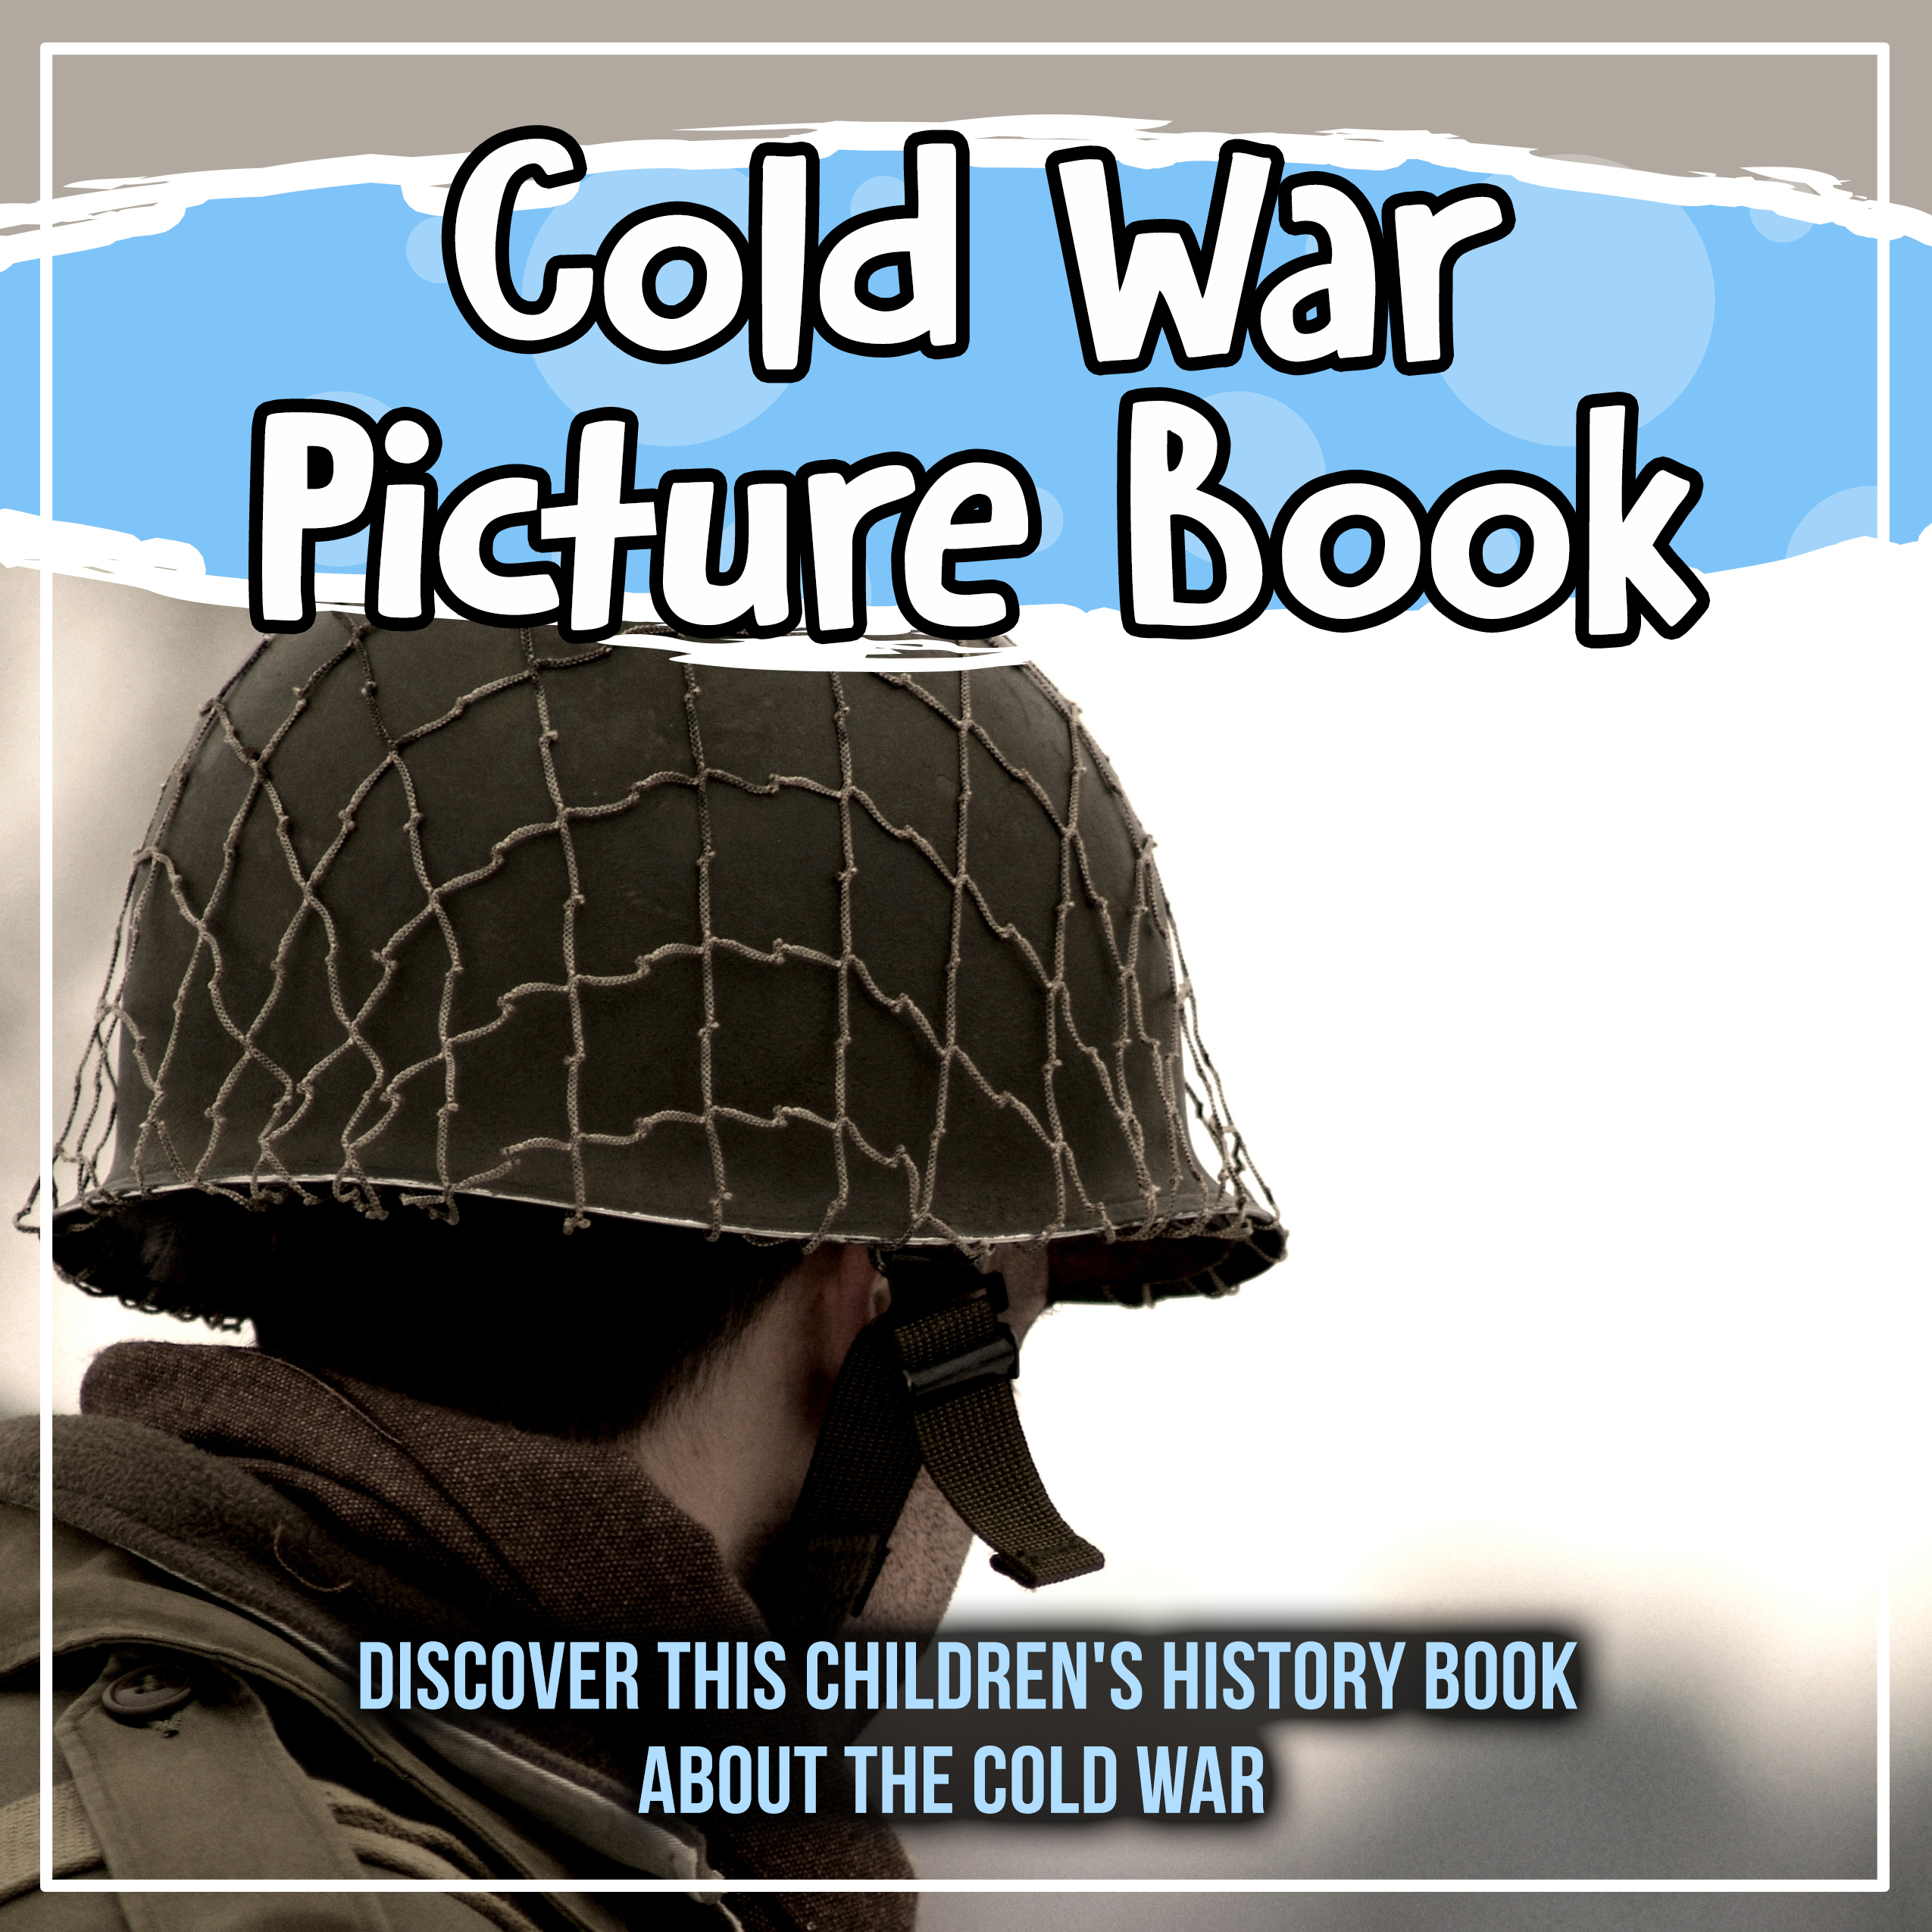 Cold War Picture Book: Discover This Children's History Book About The Cold War